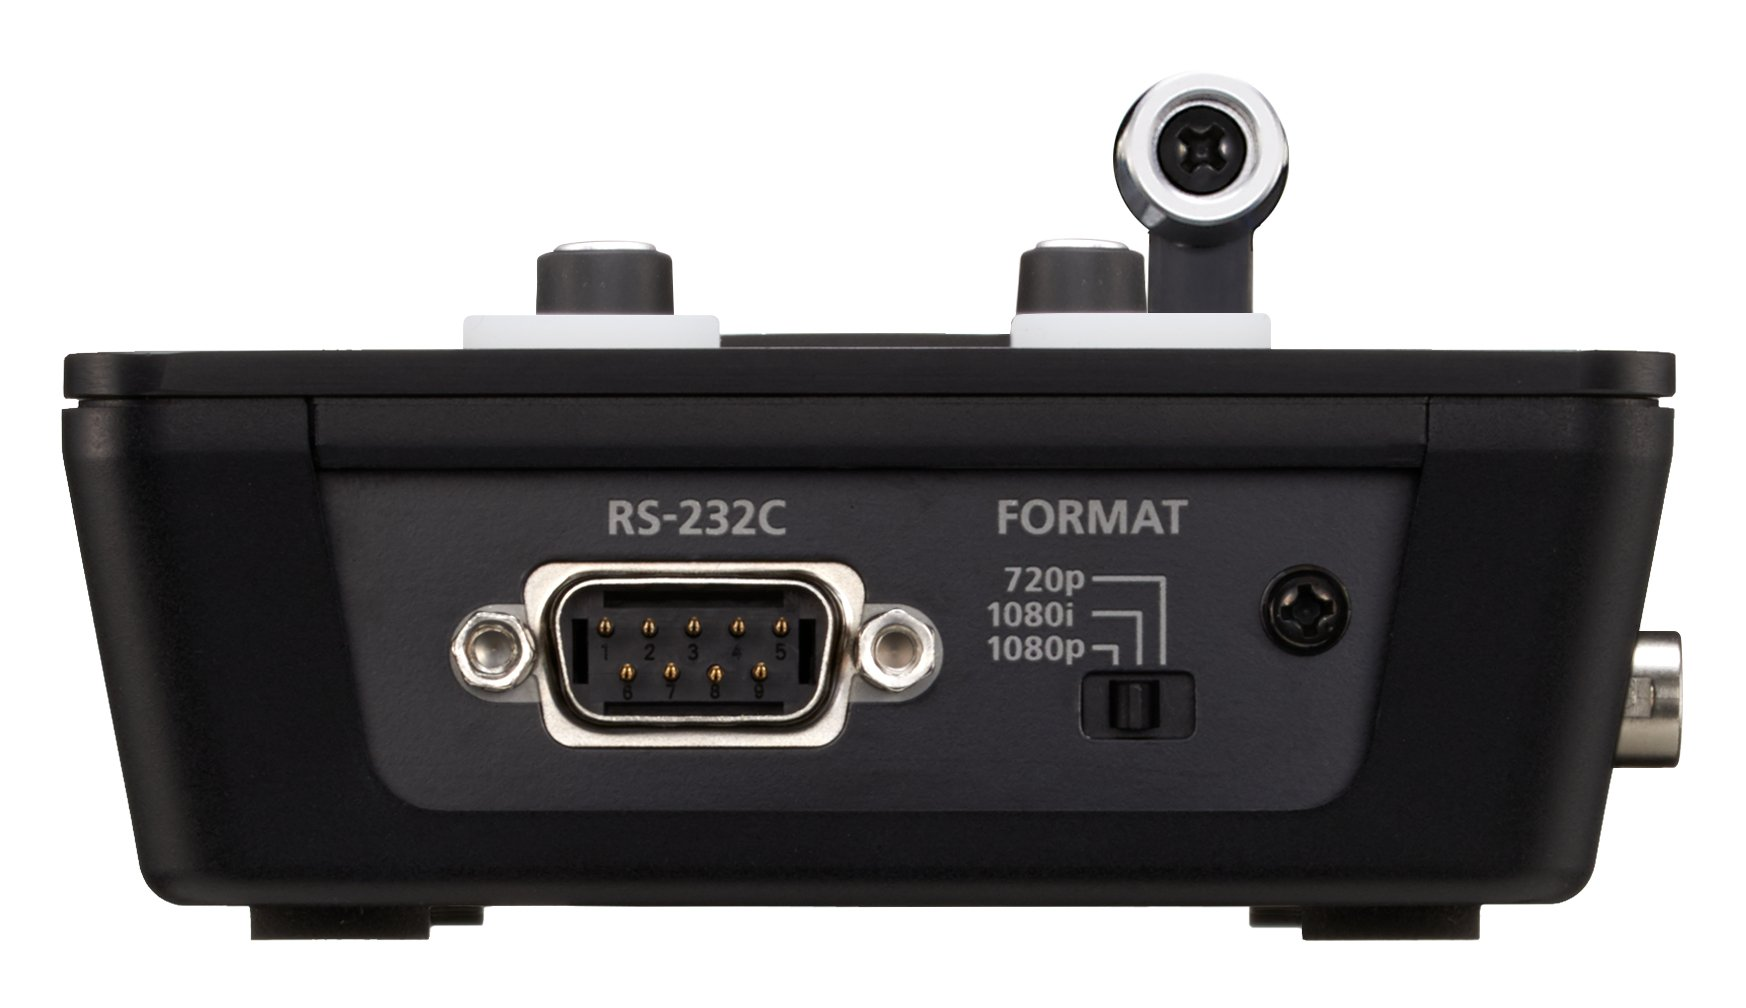 3x SDI and 1x HDMI Input 1080p Video Switcher